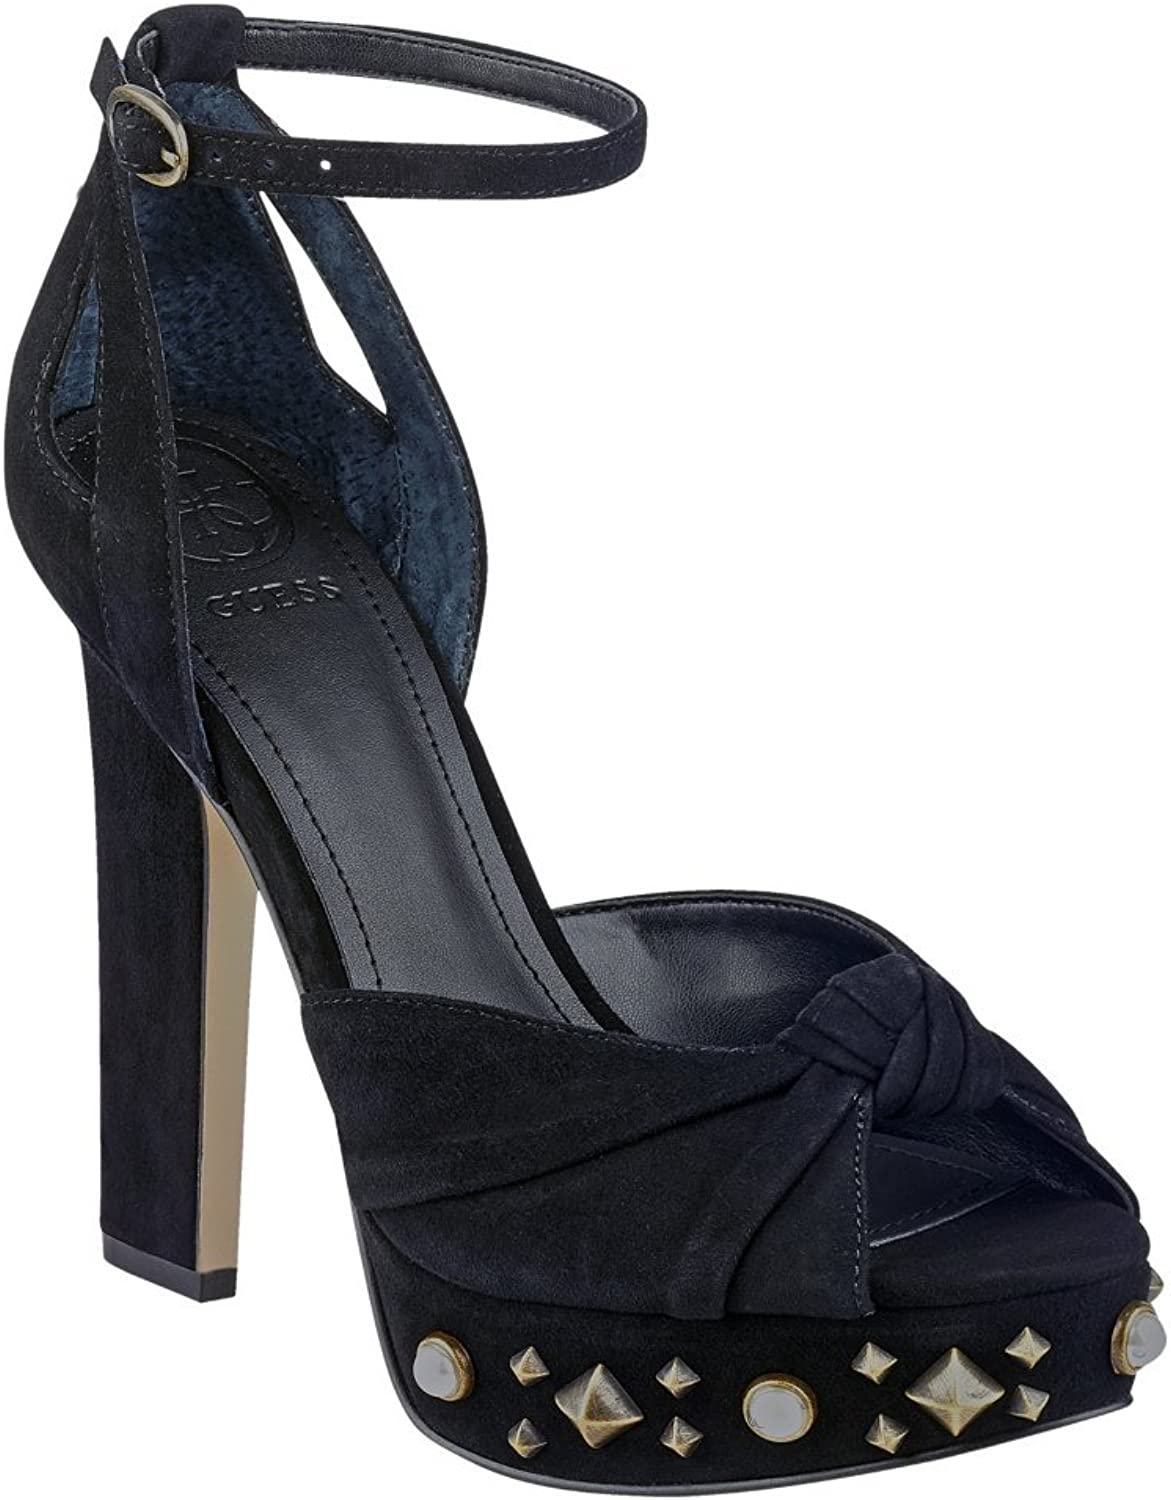 GUESS Women's Kenzie Platform Sandals